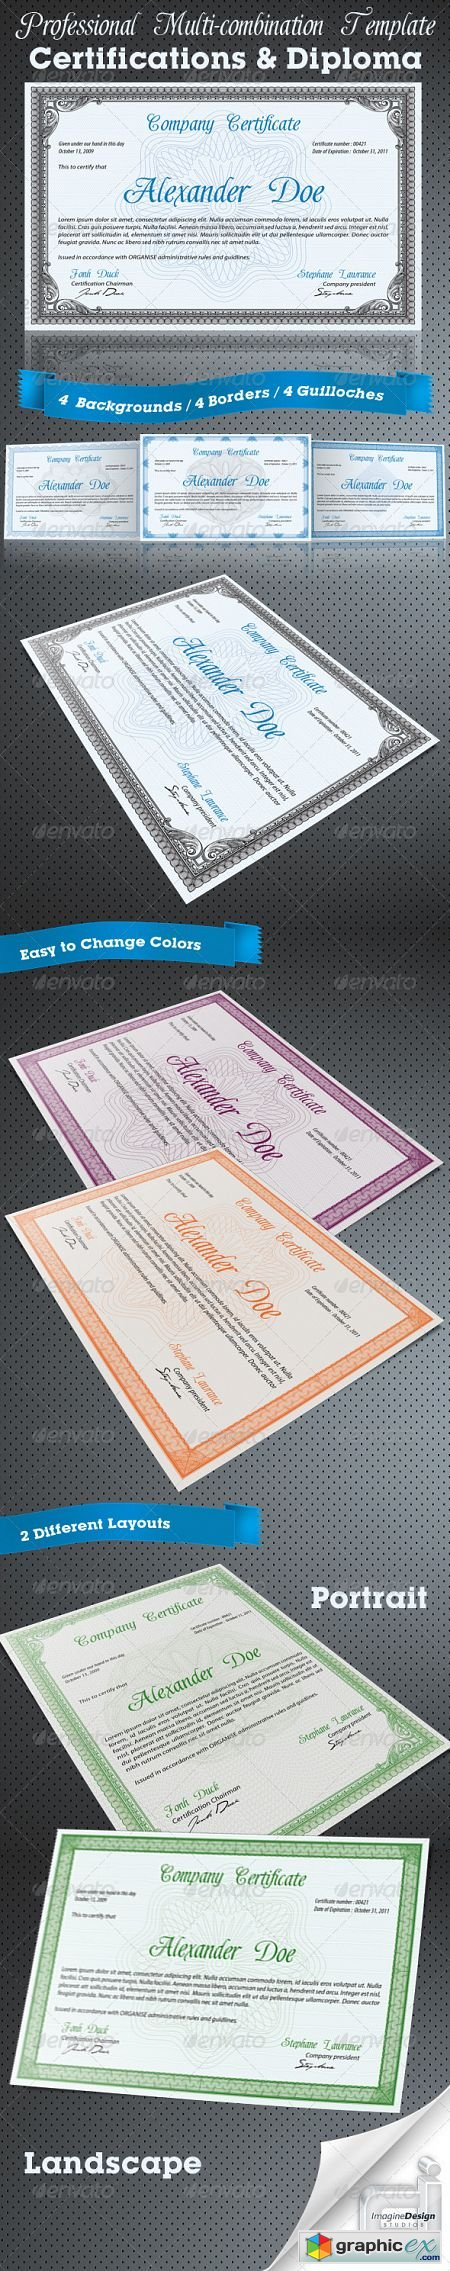 Professional Certificate or Diploma Templates